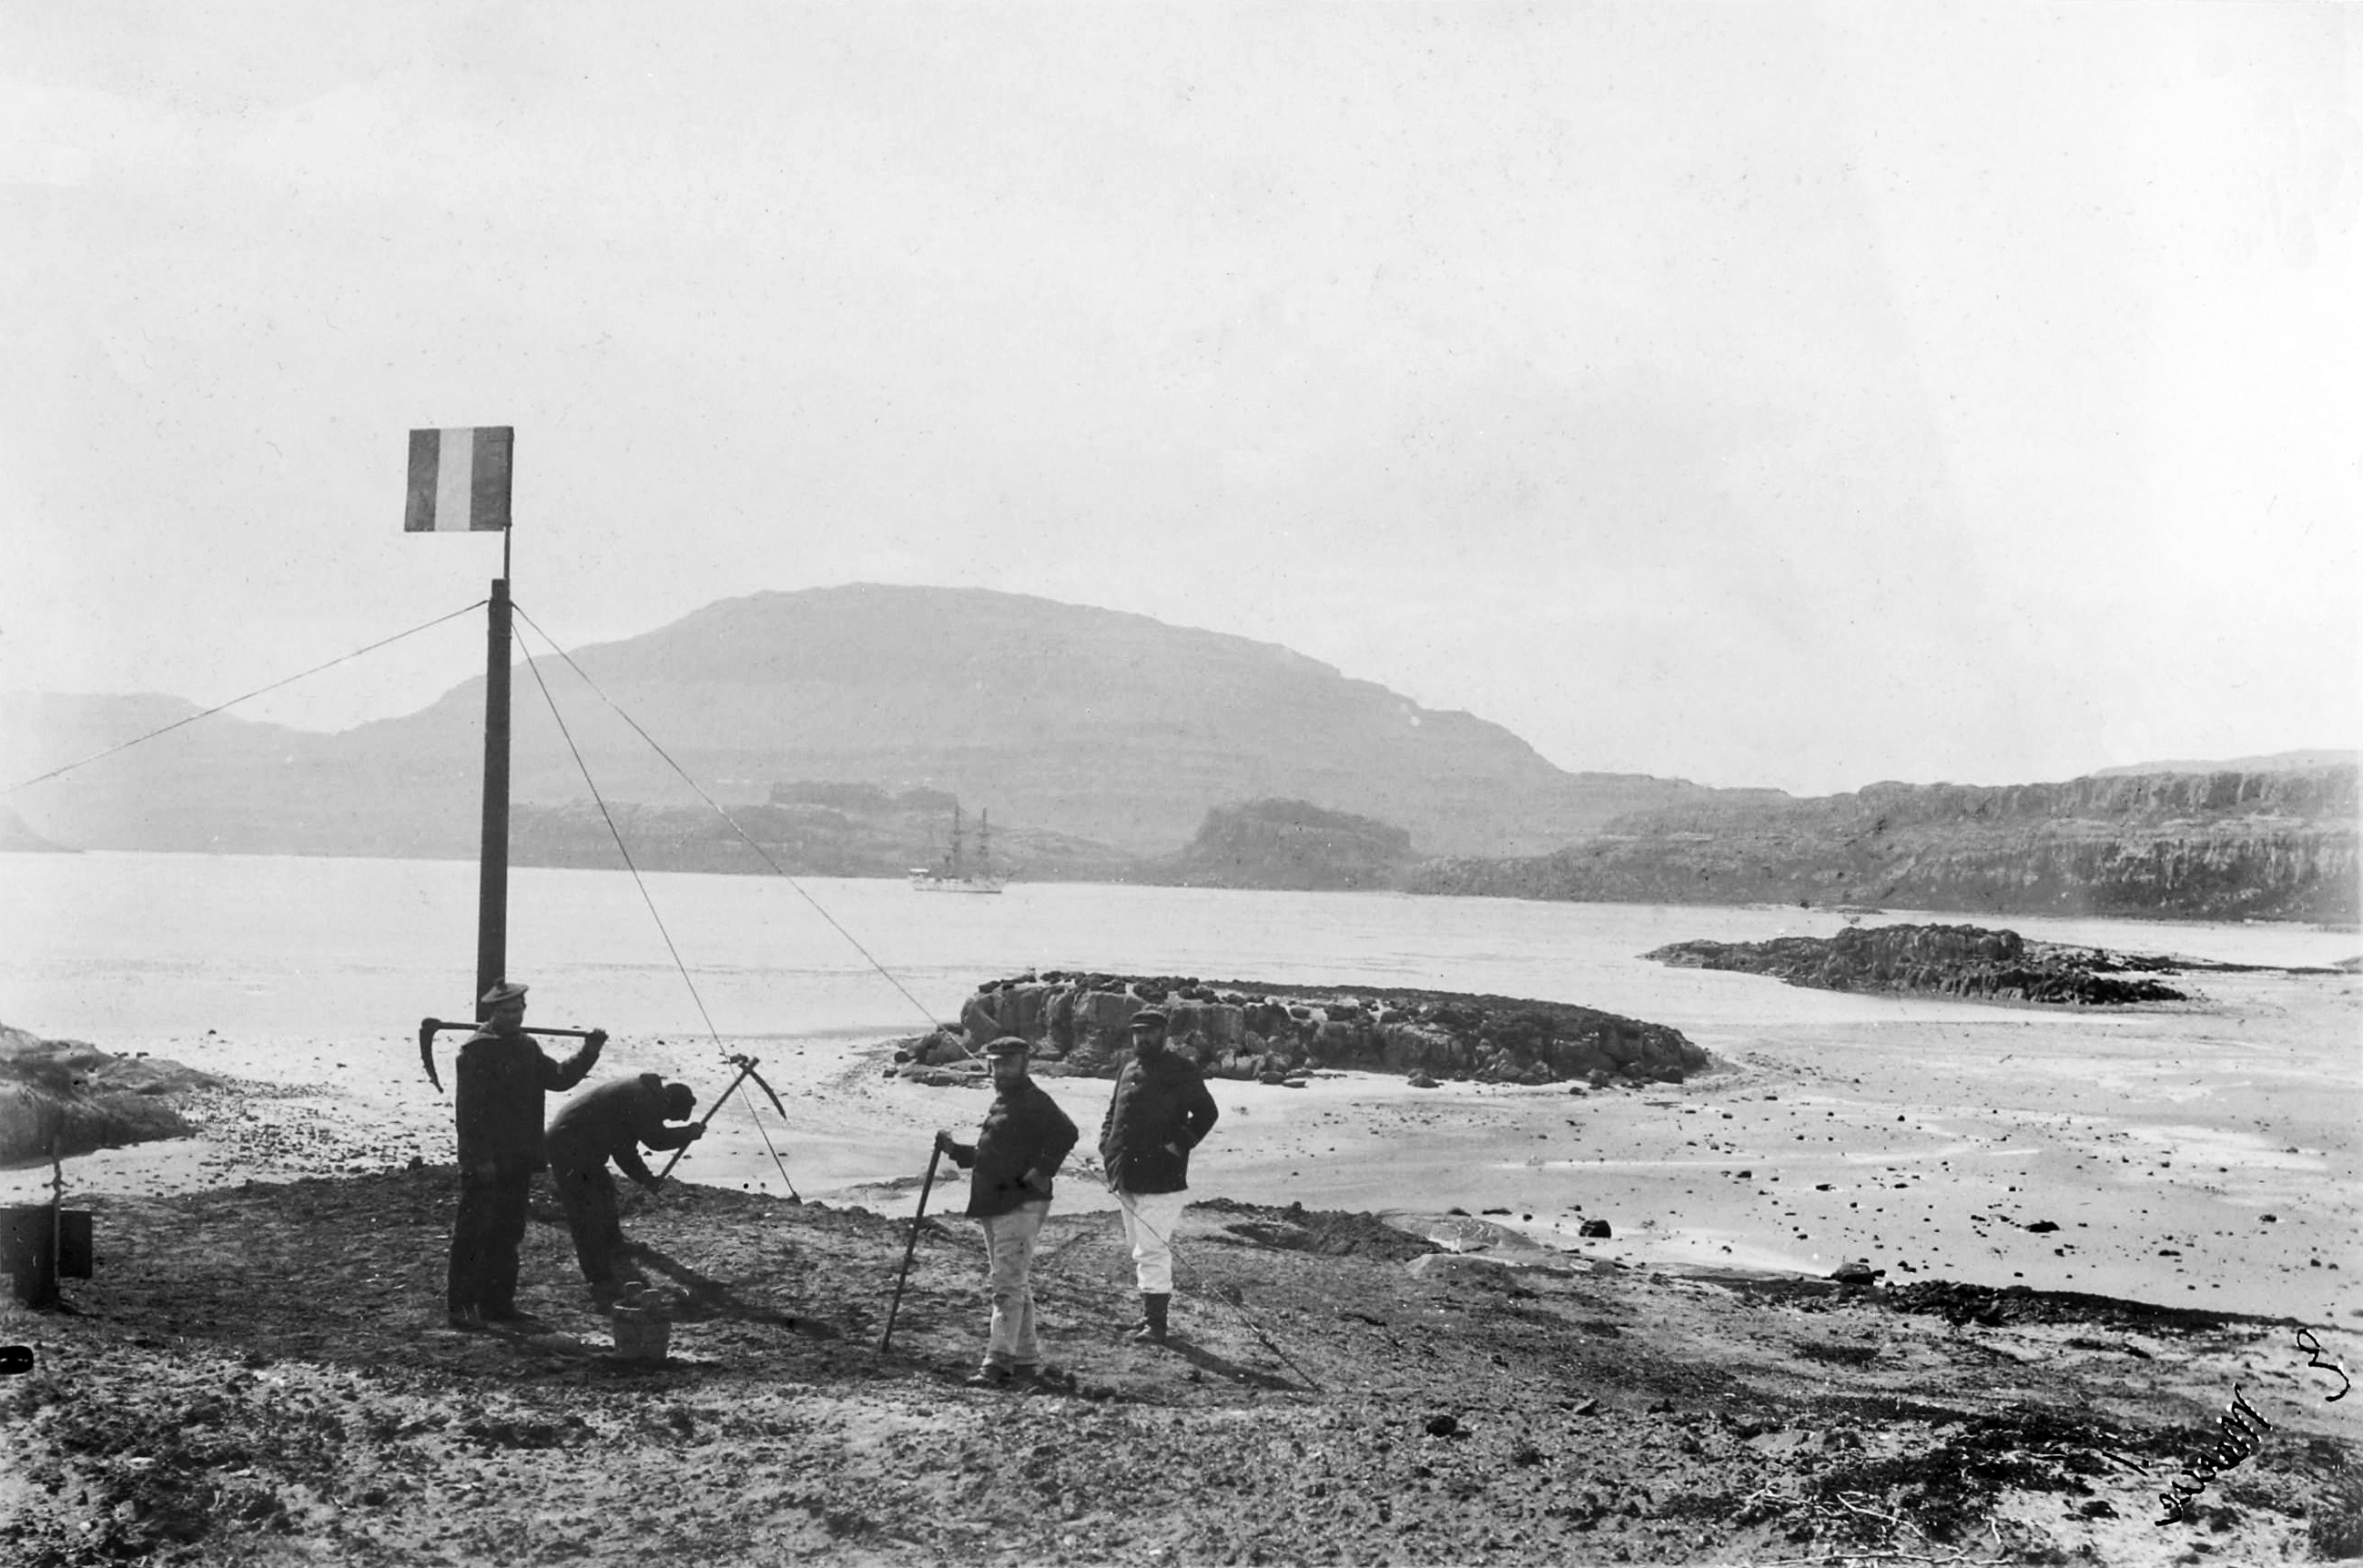 French sailors officially taking possession of the Kerguelen Islands on January 8, 1893.